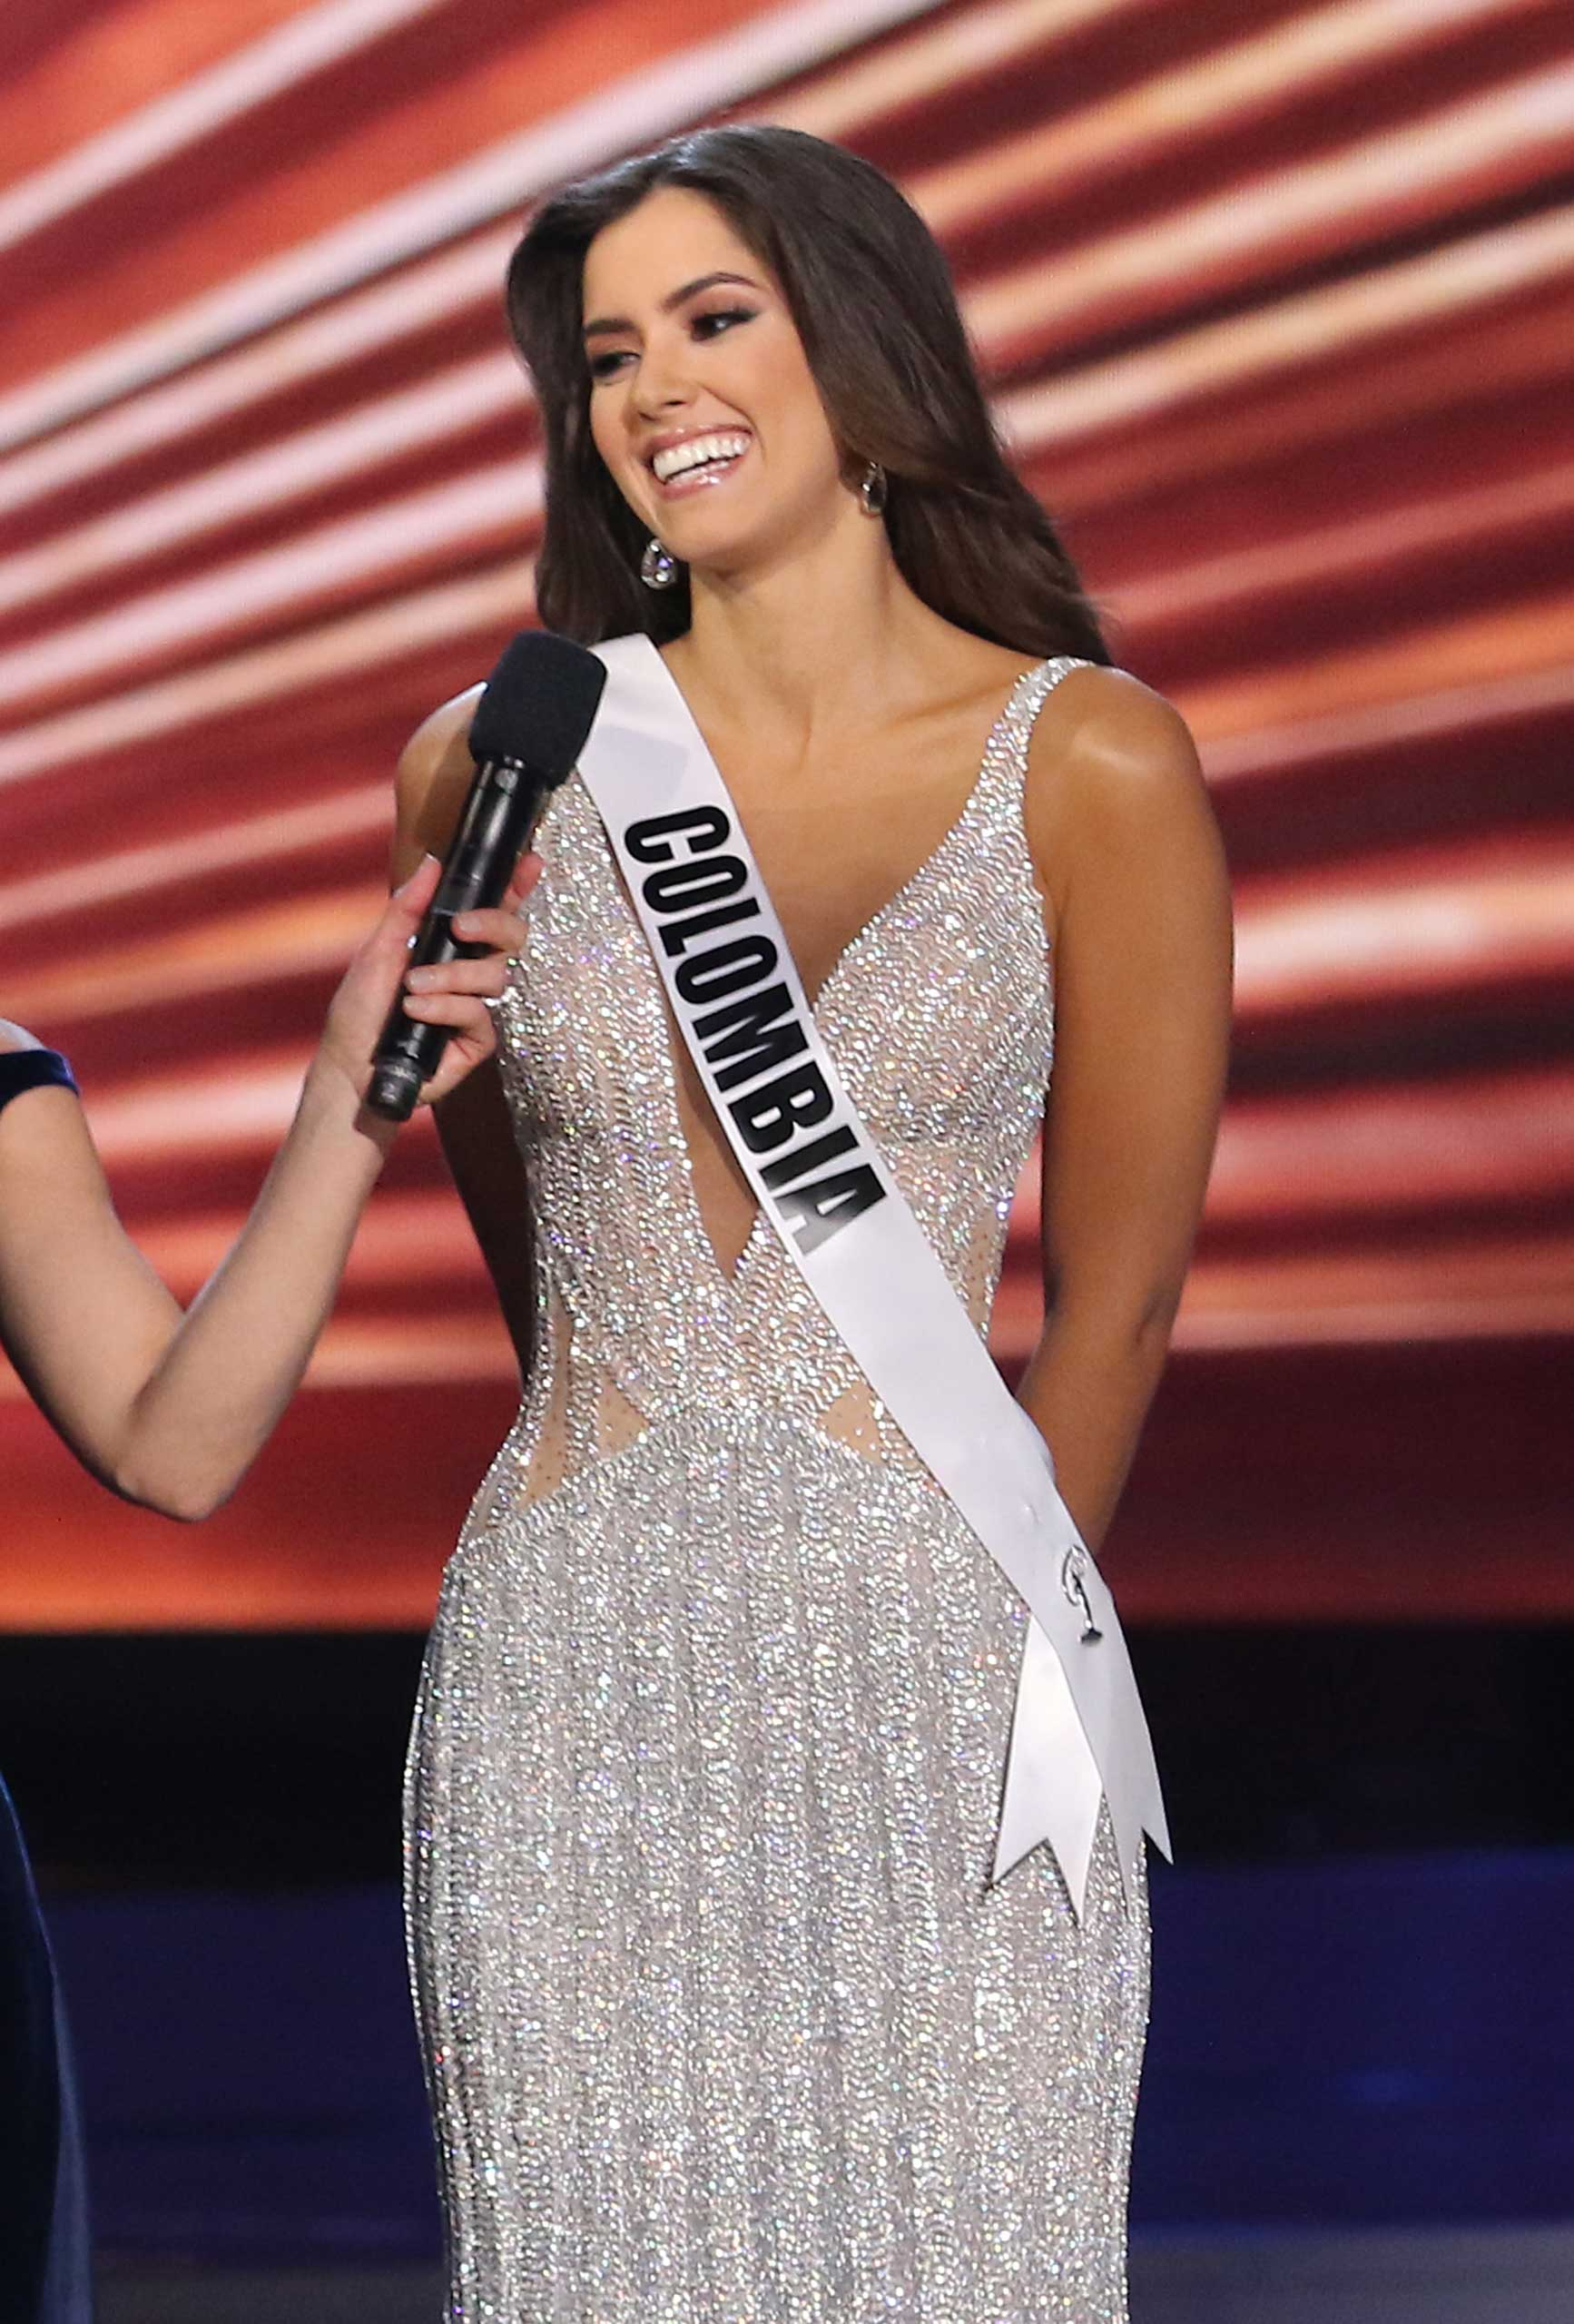 Paulina Vega prior to being crowned Miss Universe at the 63rd Annual Miss Universe Pageant in Miami on Jan. 25, 2015